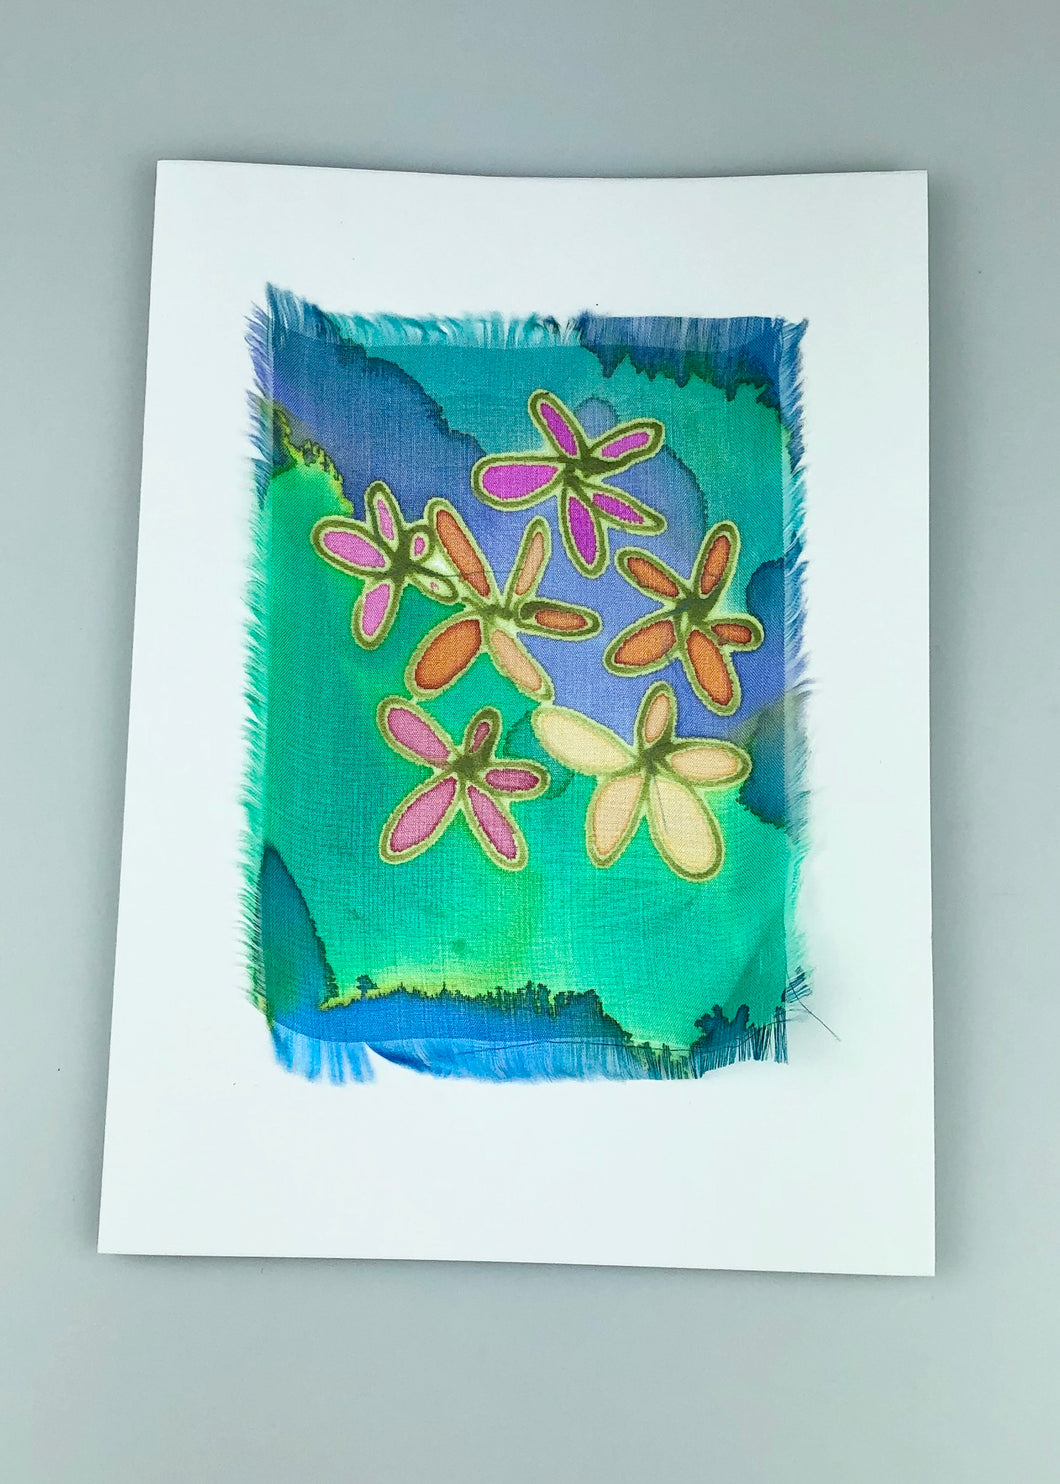 'Abstract' Painted Silk Greeting Card